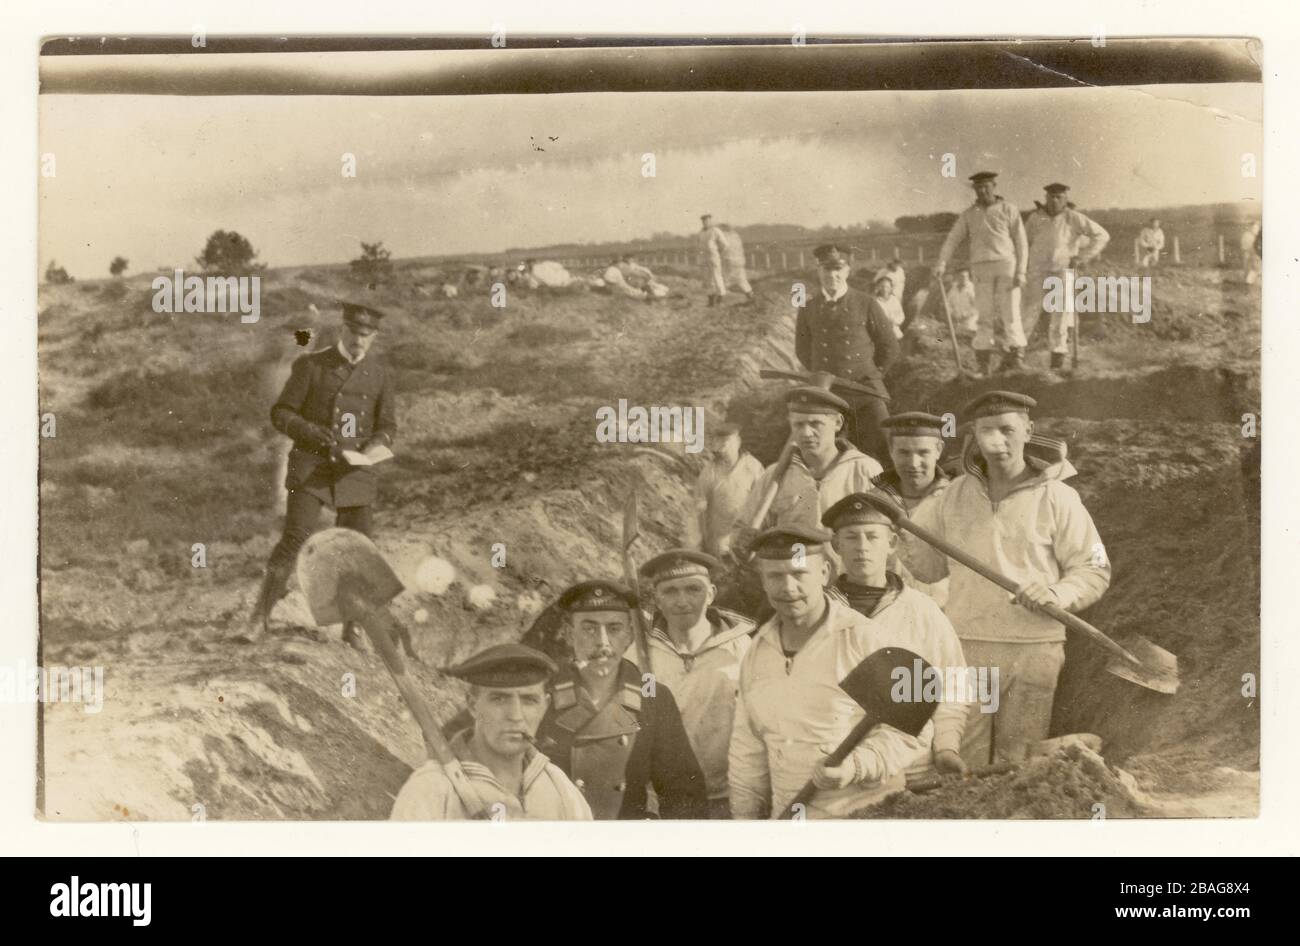 German WW1 era postcard of Prussian marines with spades digging trenches, 31st March 1915 sent to a family in Kasten, Bavaria, Germany. Stock Photo